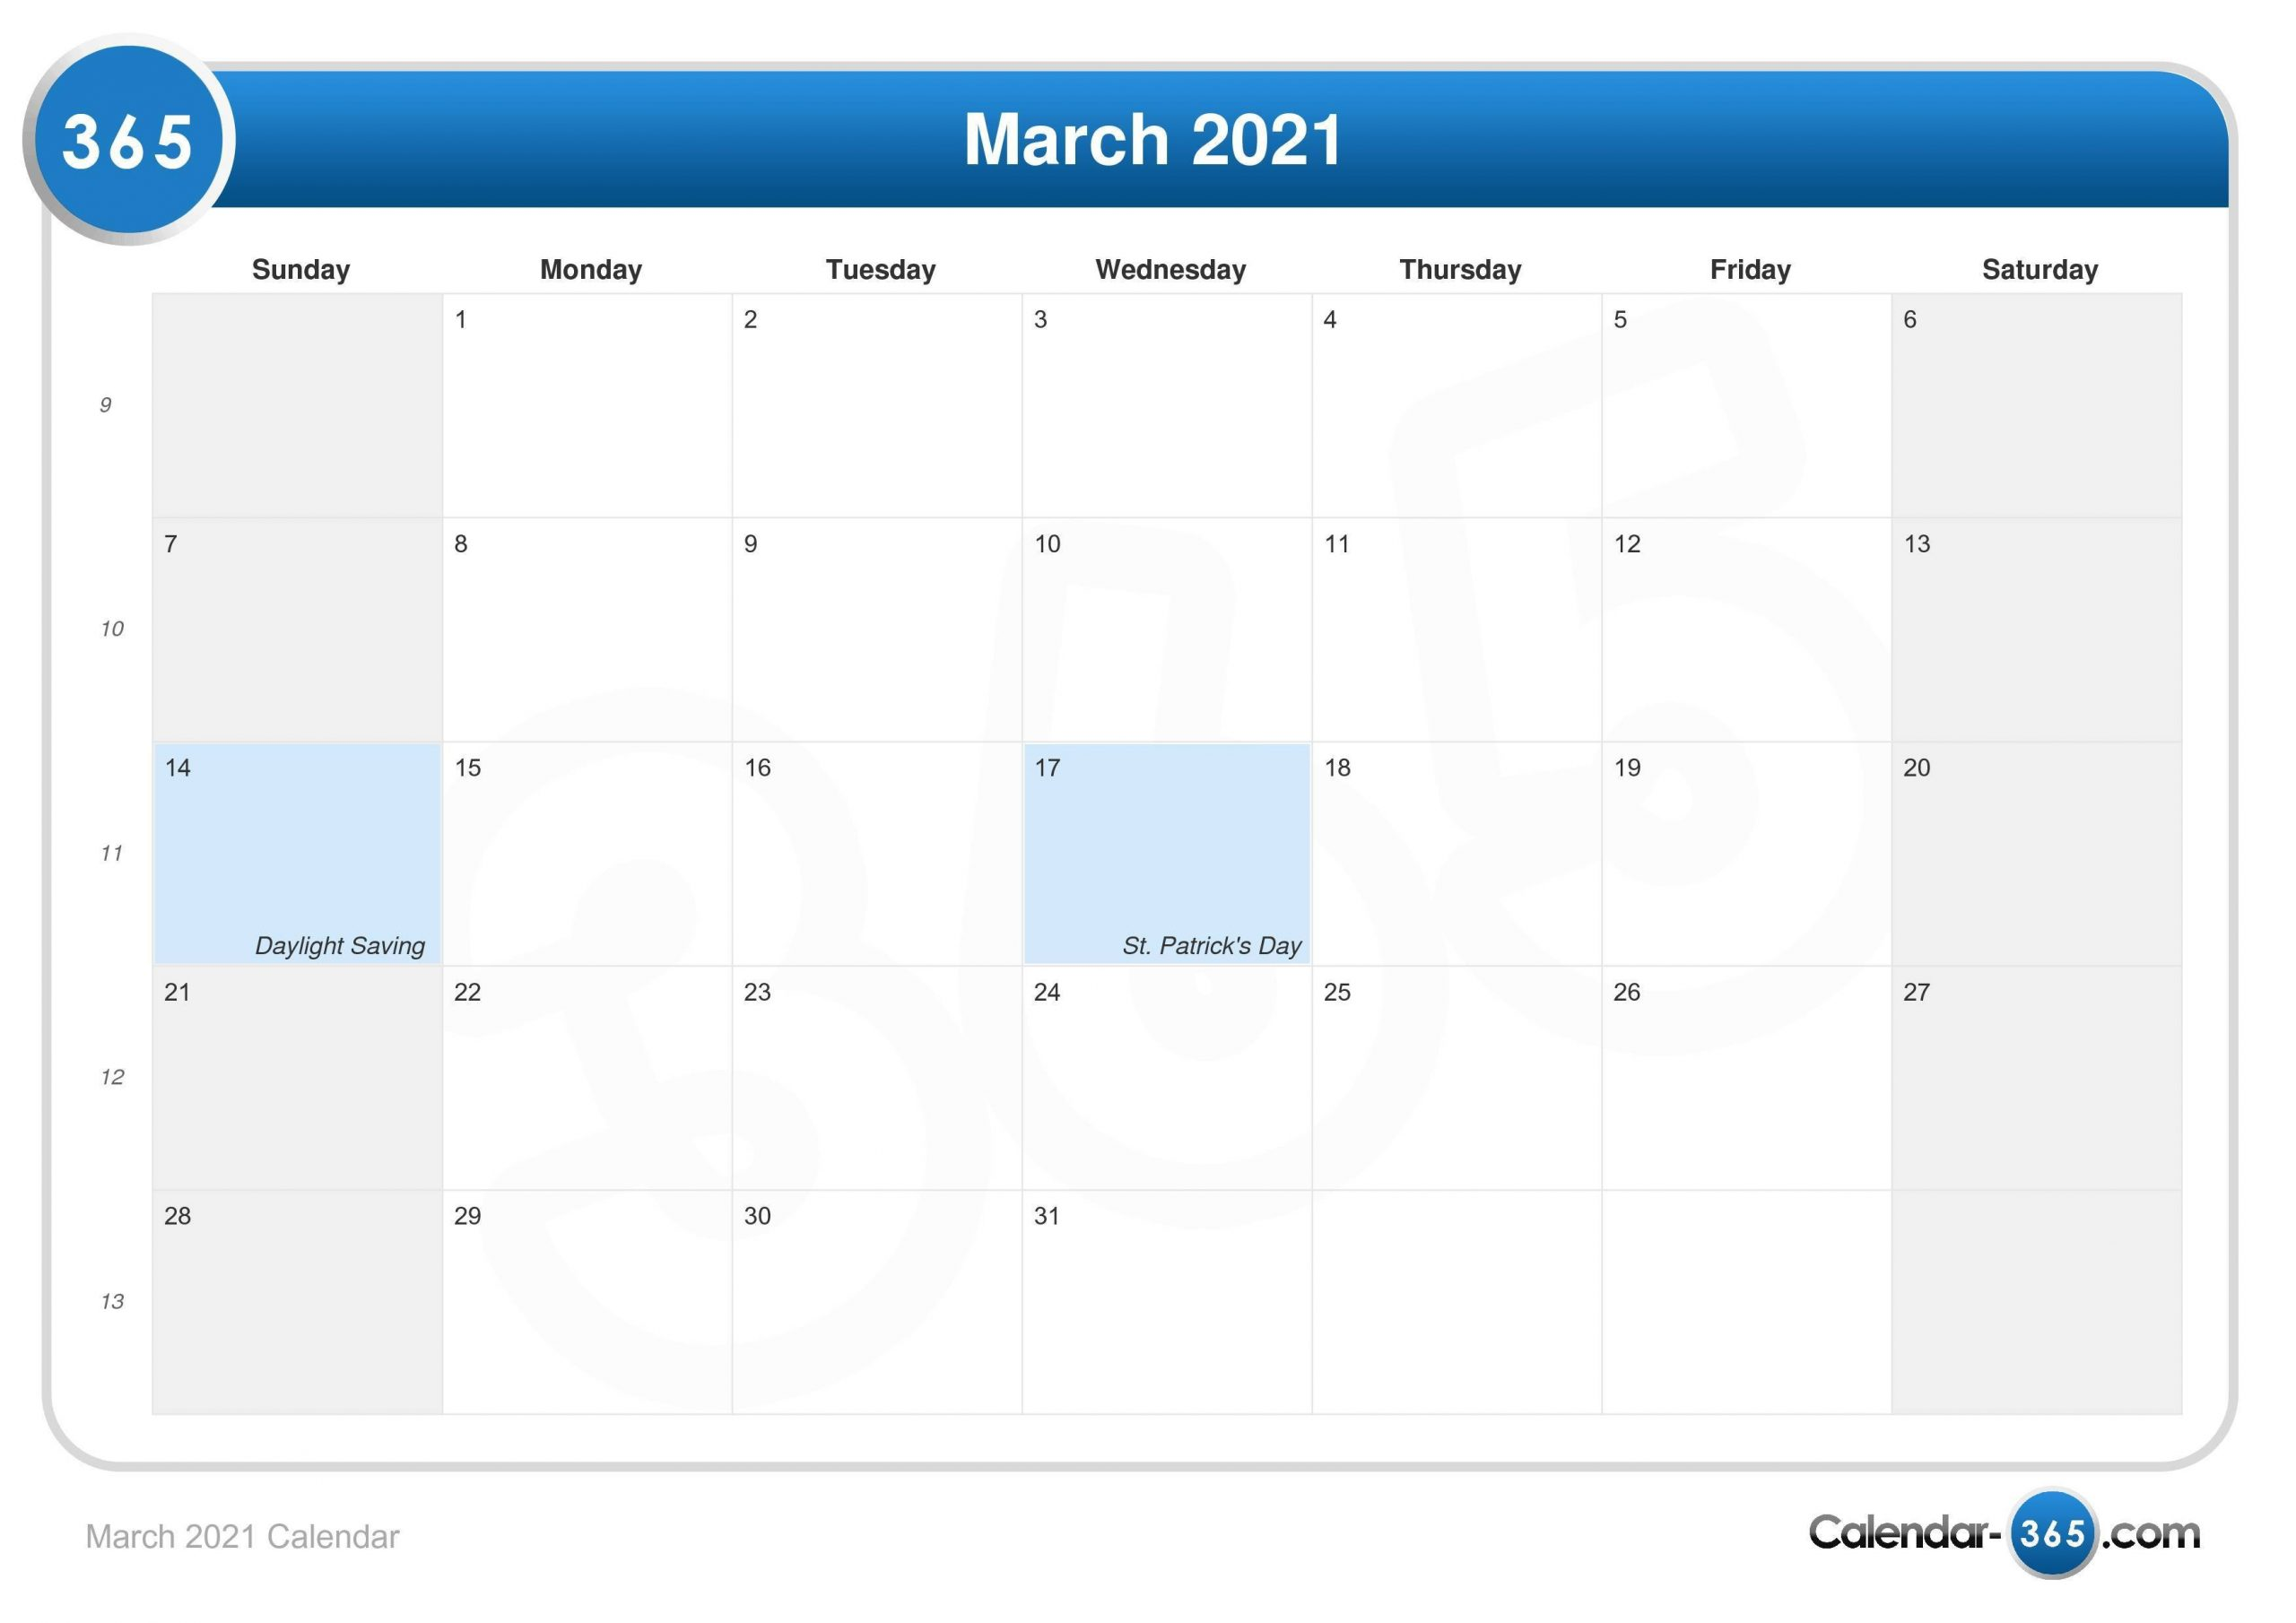 March 2021 Calendar Printable Calendar For The Week Of March 2 Thru March 6